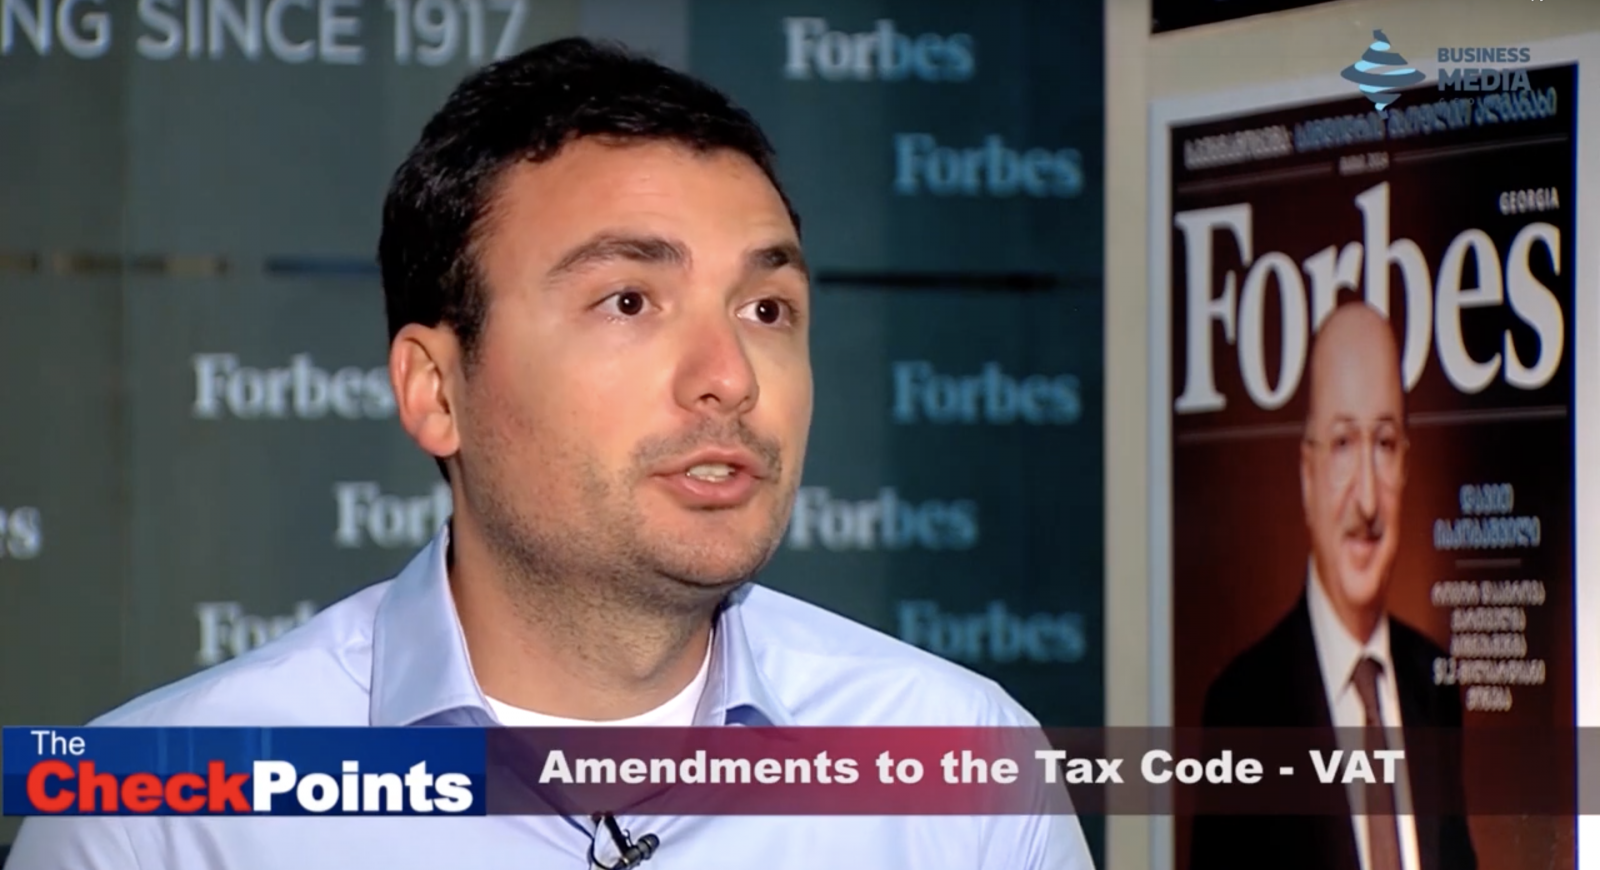 Barshov on the Amendments to the TAX Code: Some Businesses Will Experience a Negative Effect